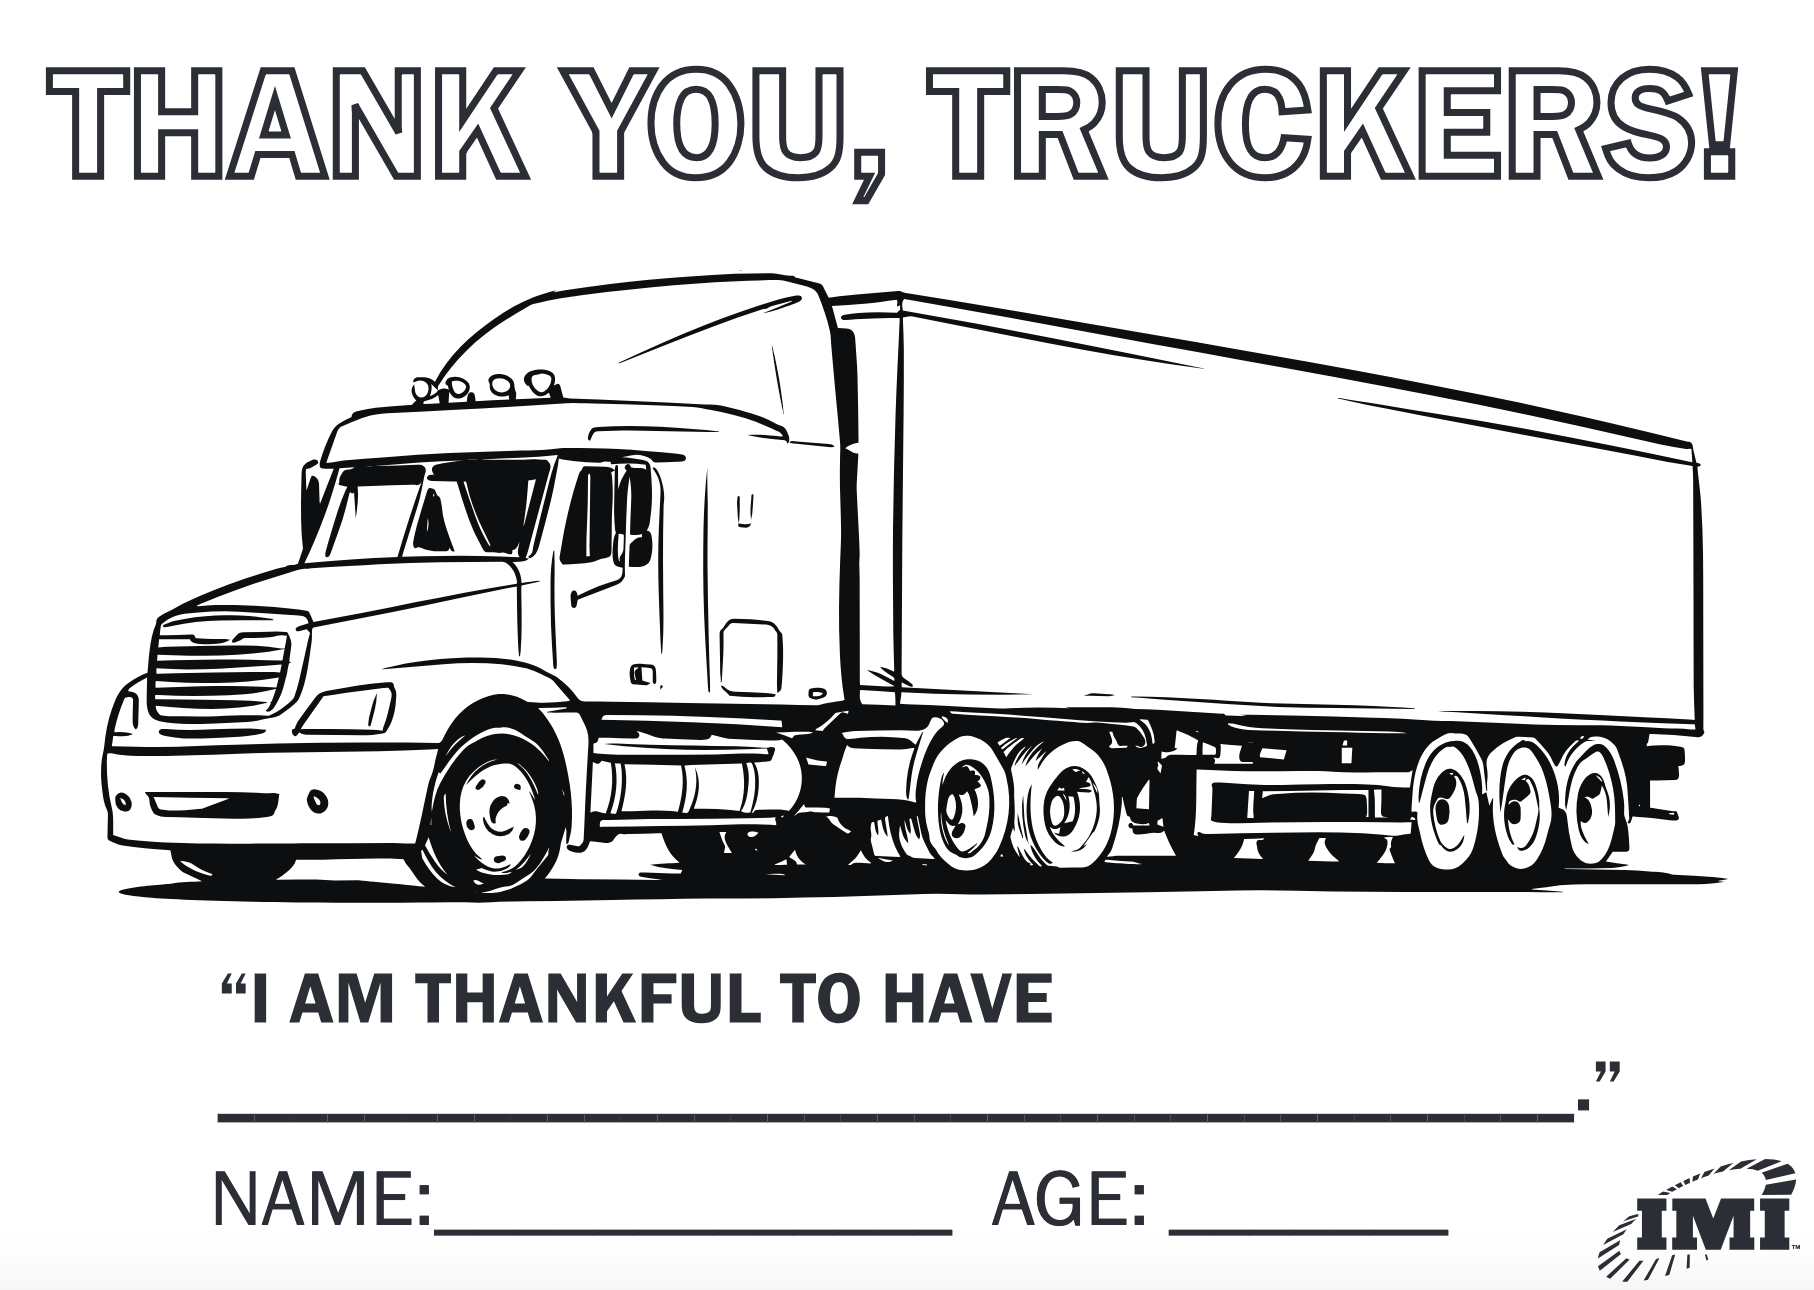 A kid's color sheet to thank a trucker. Has a truck to be colored, name, age,and a space to write a note